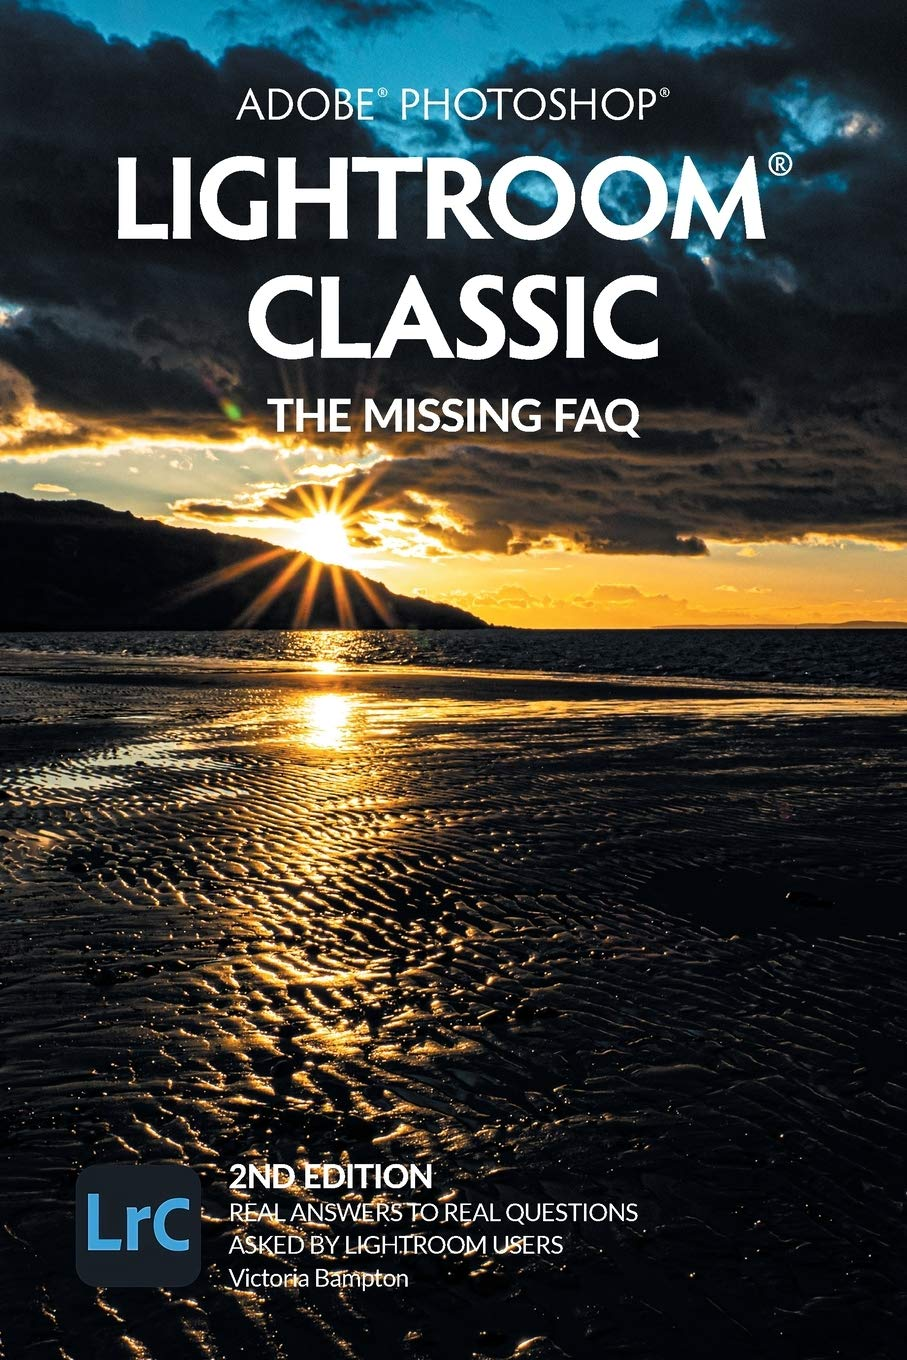 Adobe Photoshop Lightroom Classic – The Missing FAQ (2nd Edition): Real Answers to Real Questions Asked by Lightroom Users